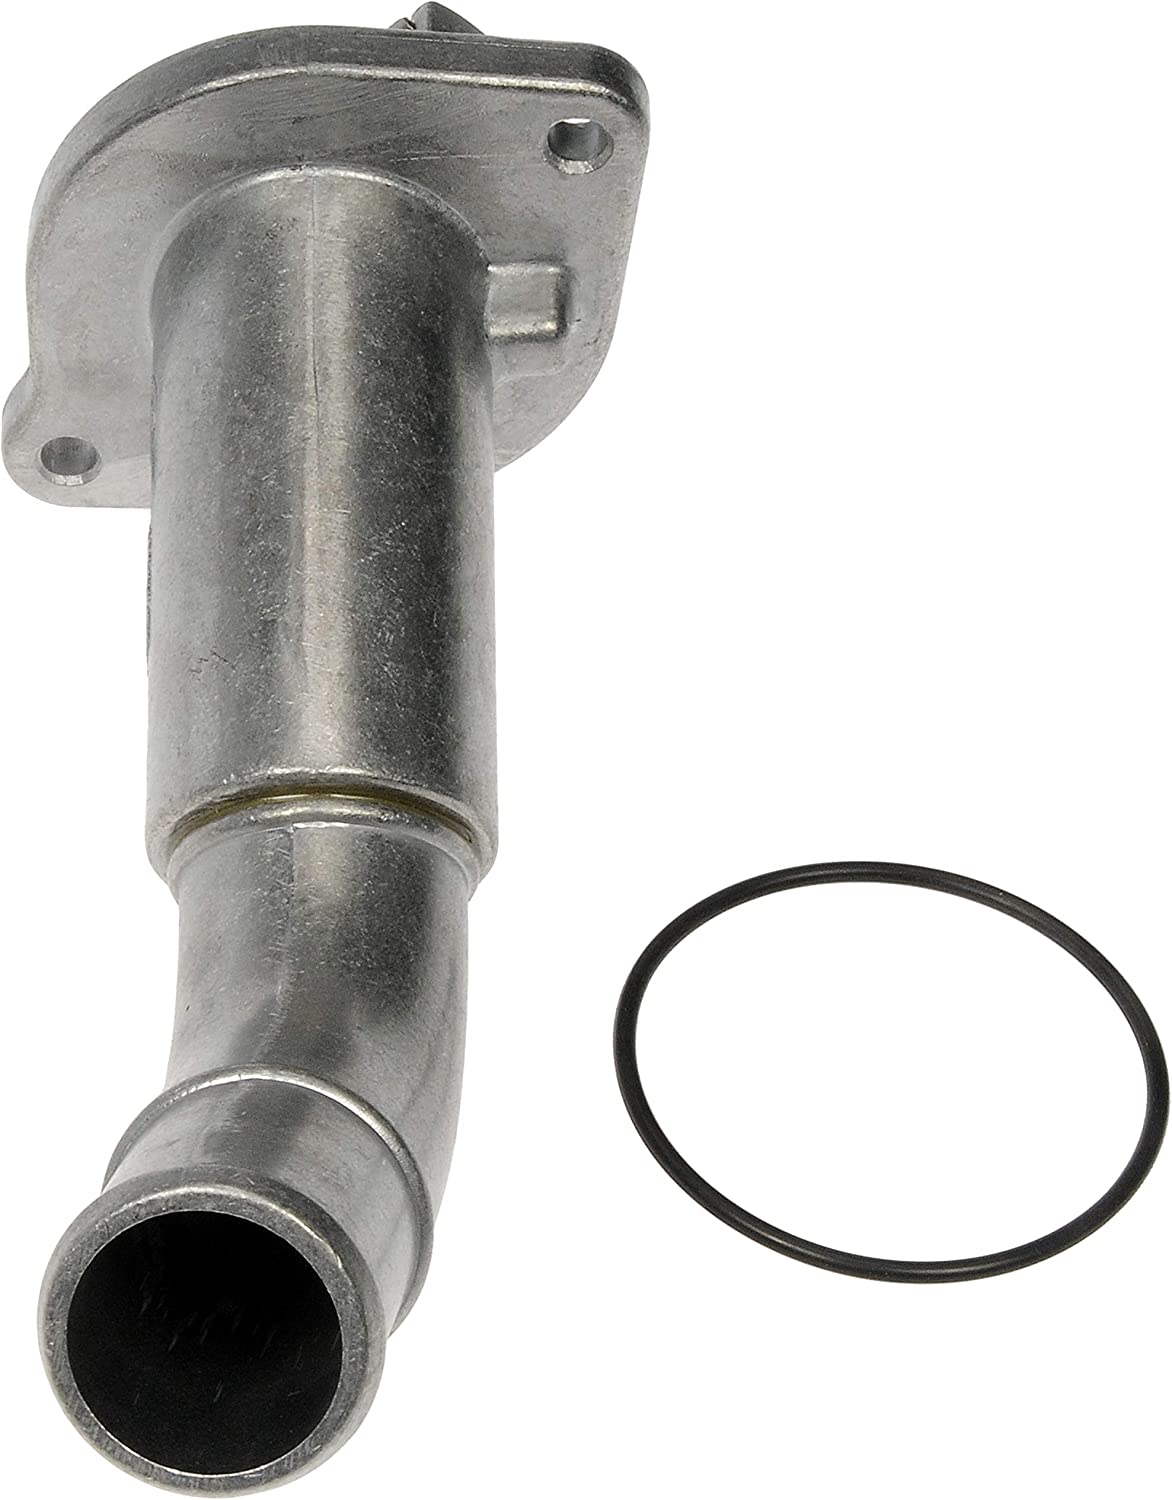 Dorman 902-2800 Integrated Thermostat Housing Assembly for Select Models